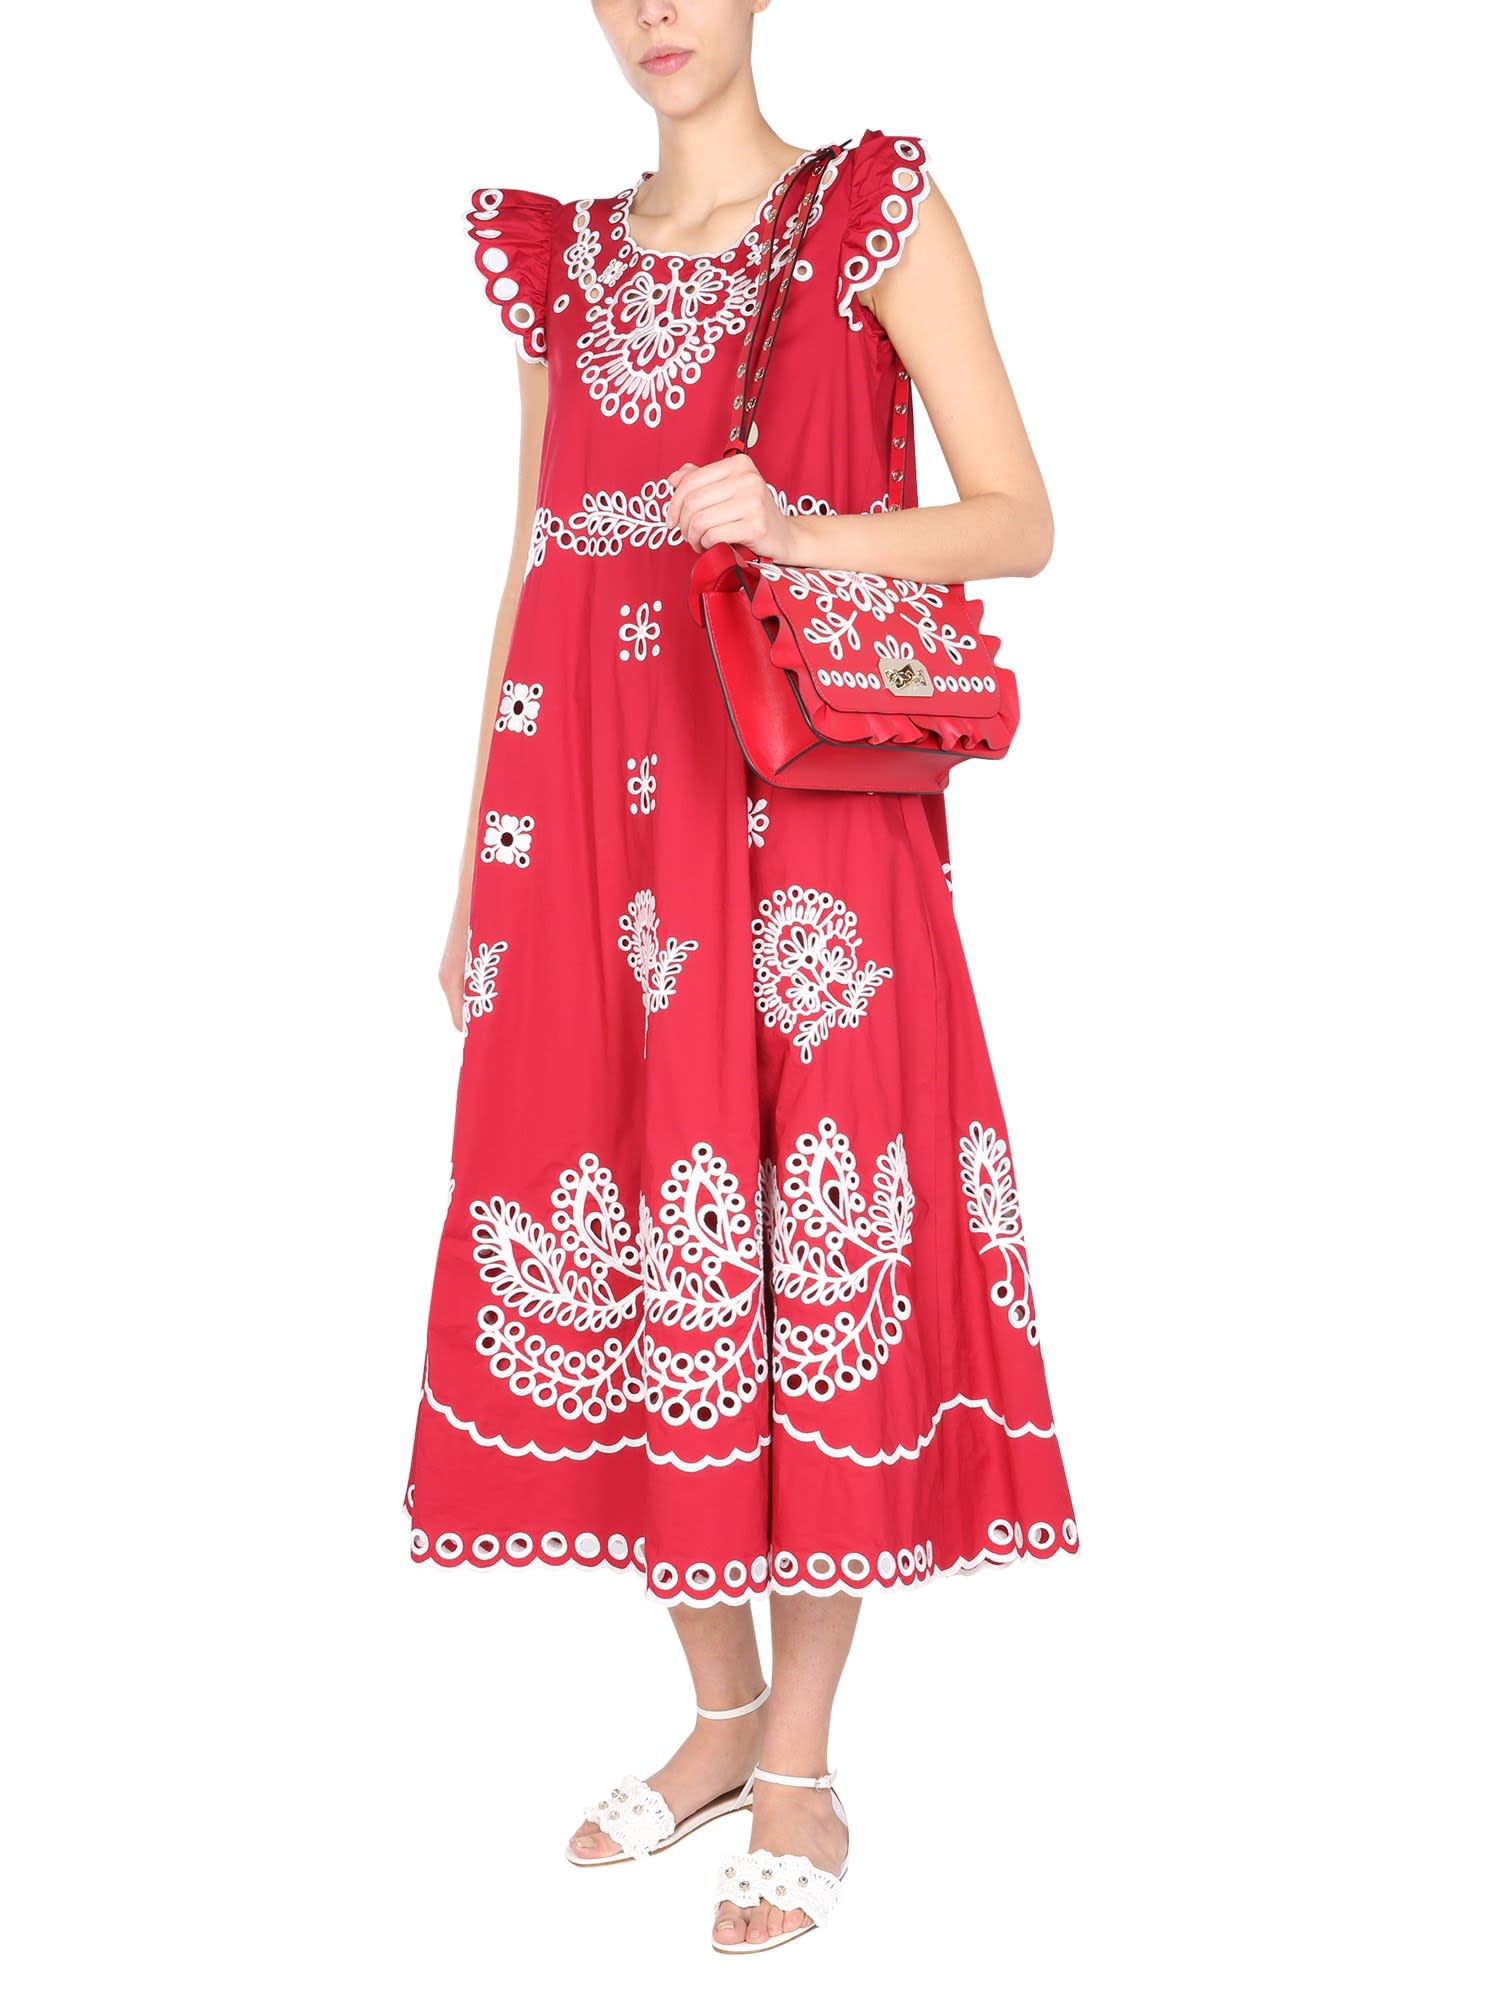 Buy Midi Dress RED Valentino online, shop RED Valentino with free shipping